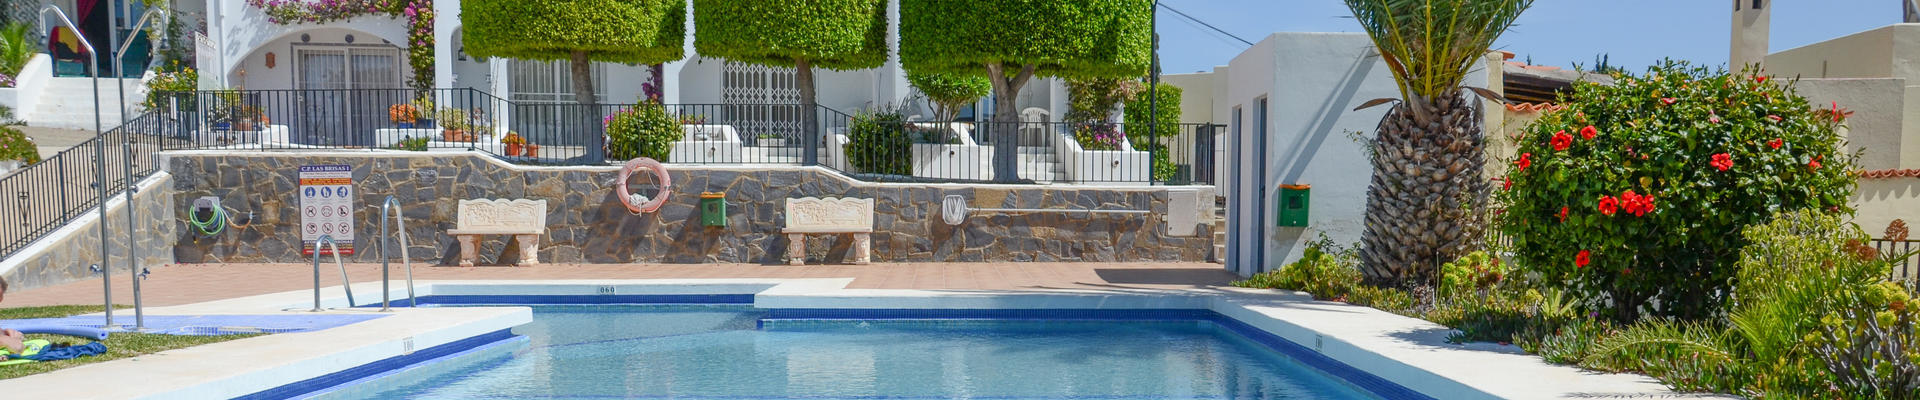 LV779: 2 Bedroom Townhouse for Sale